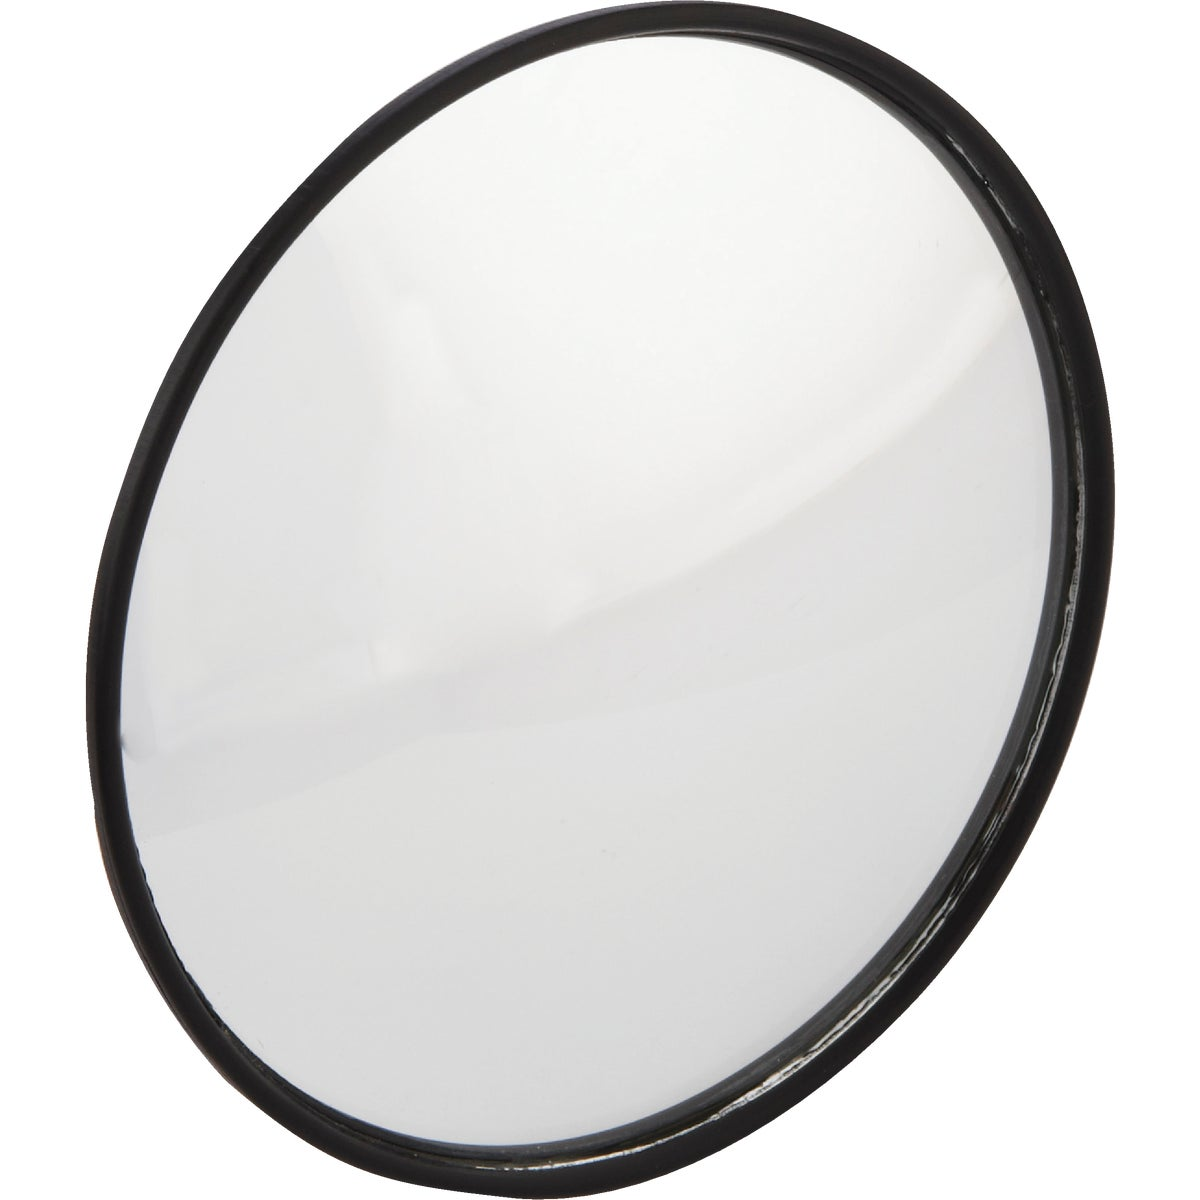 "2""WIDE ANGLE SPOT MIRROR - 71111 by Custom Accessories"